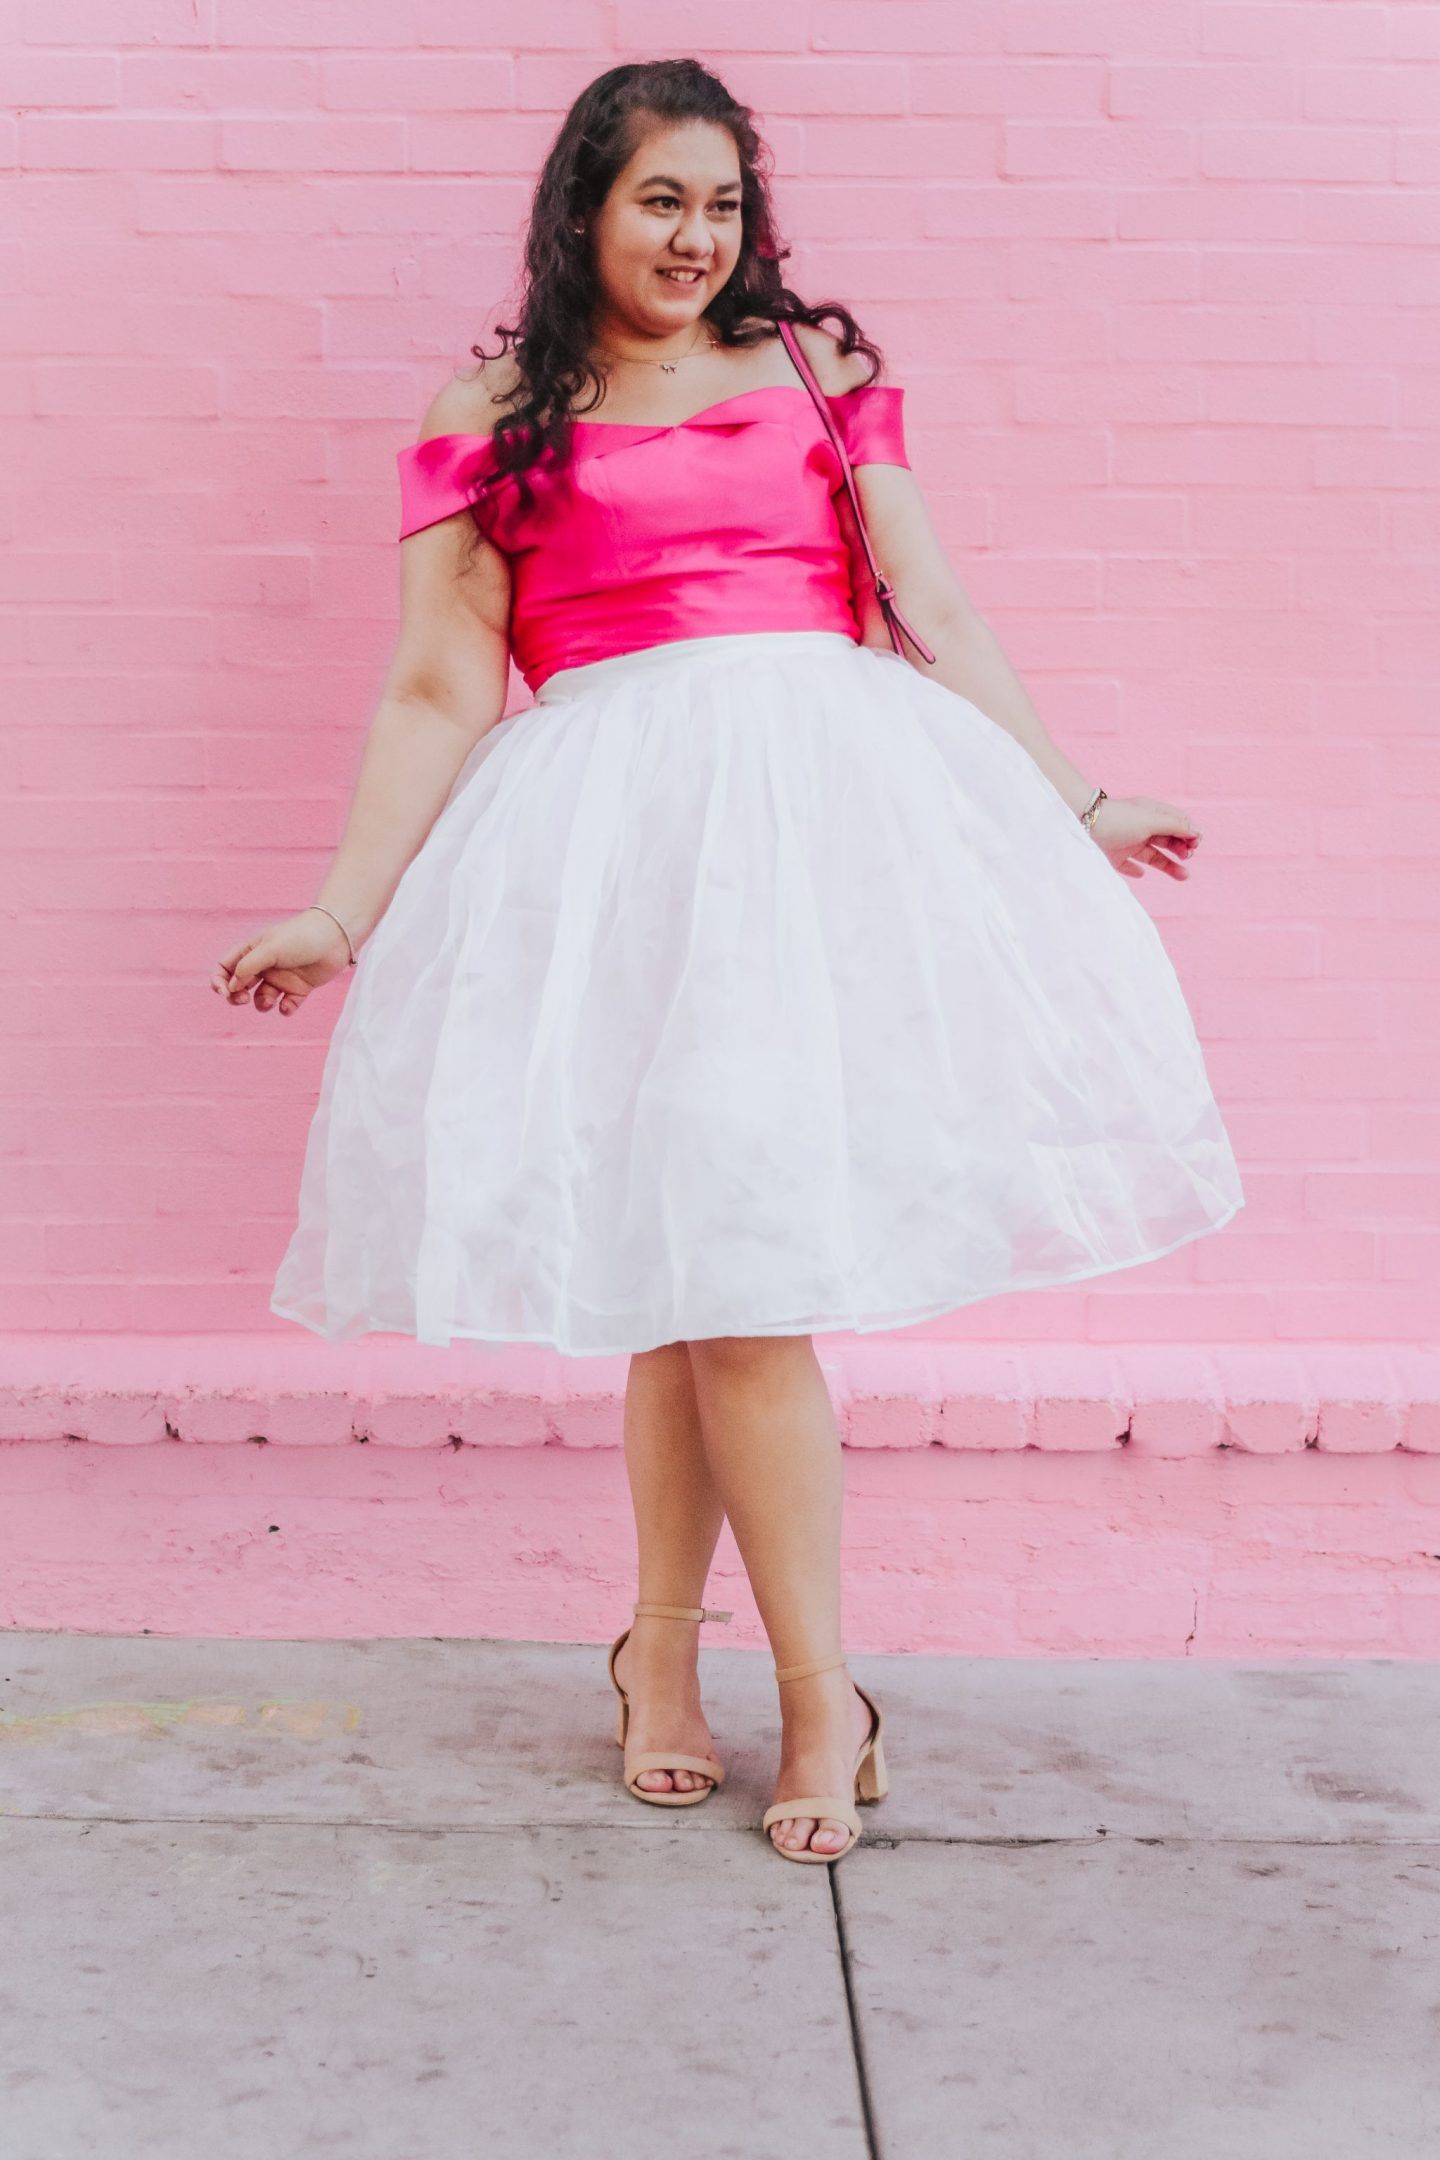 Dressing Like An Everyday Princess in a Tulle Skirt